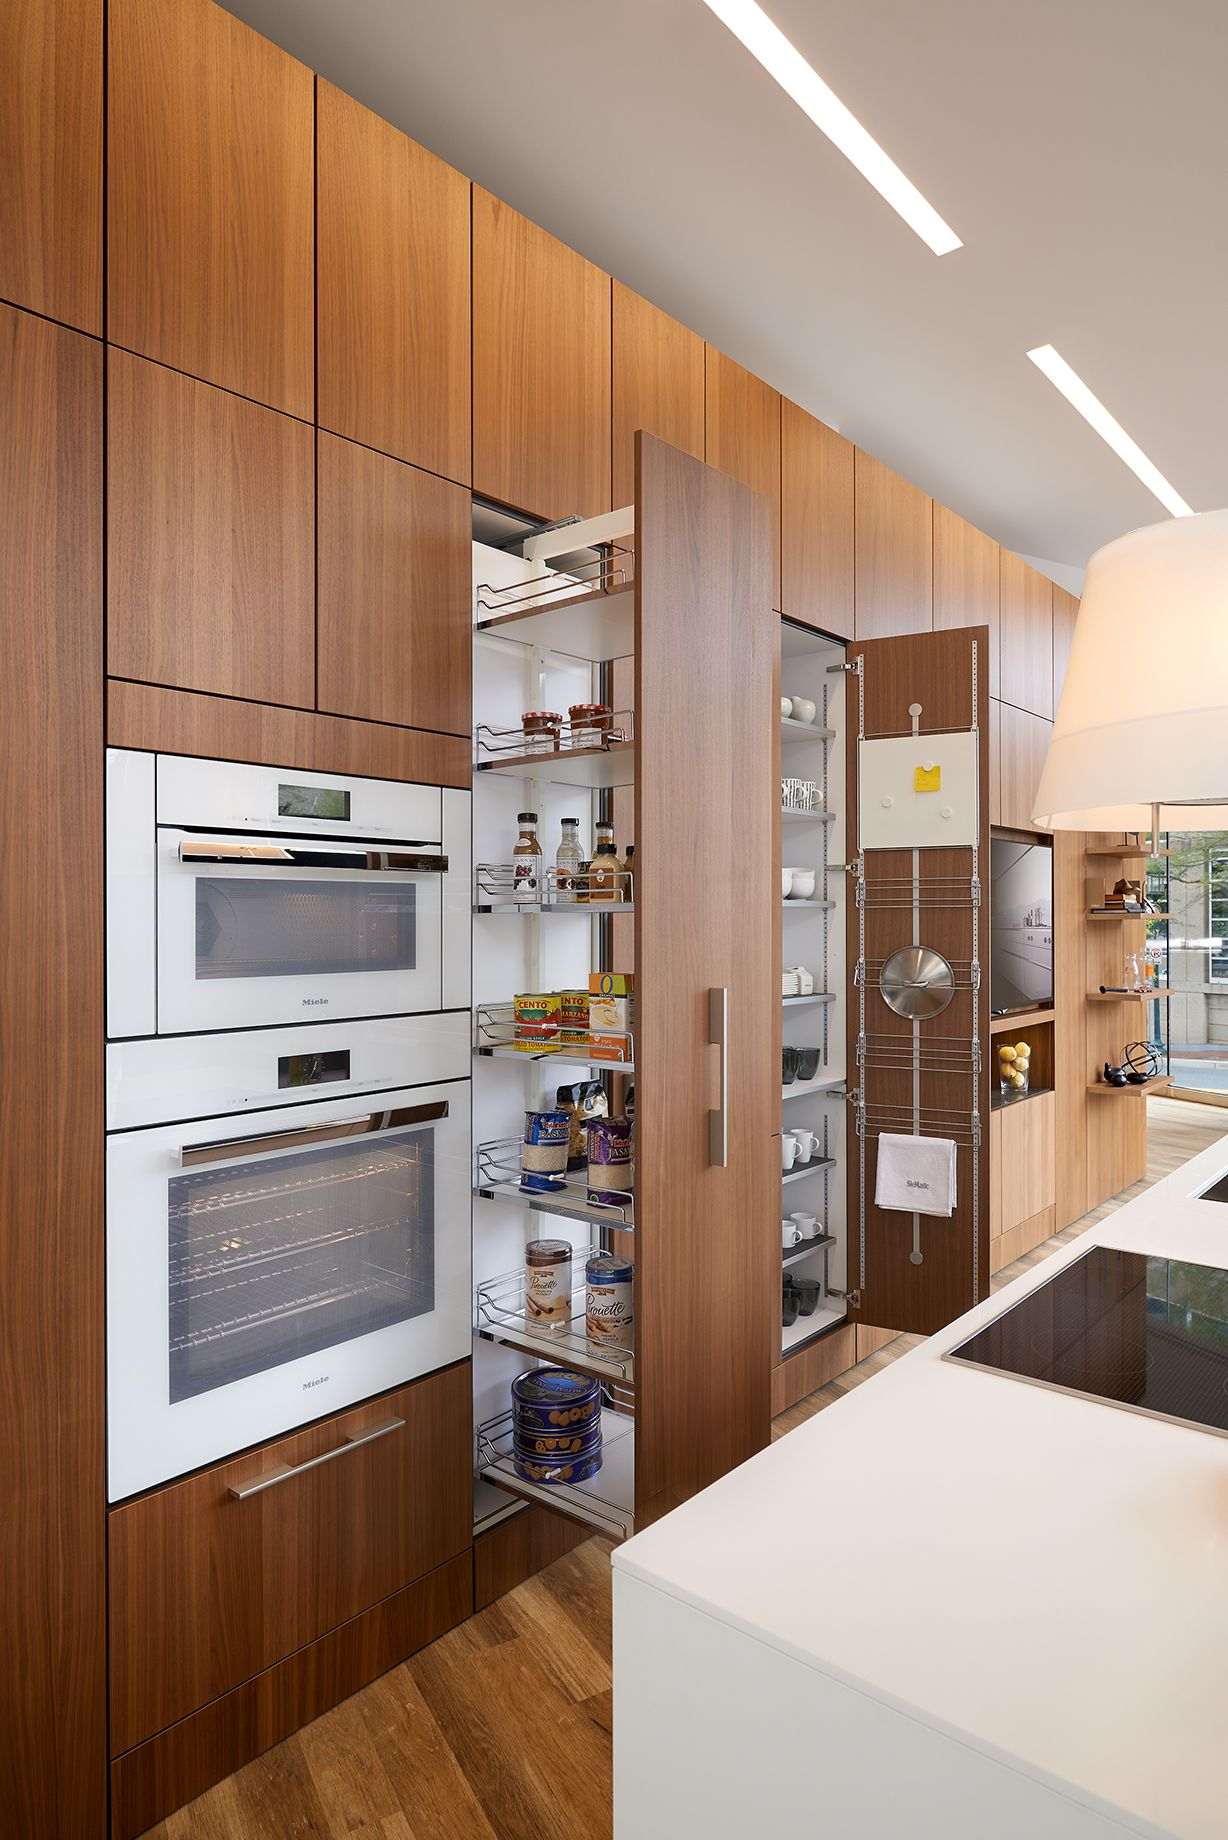 Siematic Pure Kitchen Siematic Wood Veneer Natural Walnut Amusing Miele Kitchens Design Inspiration Design